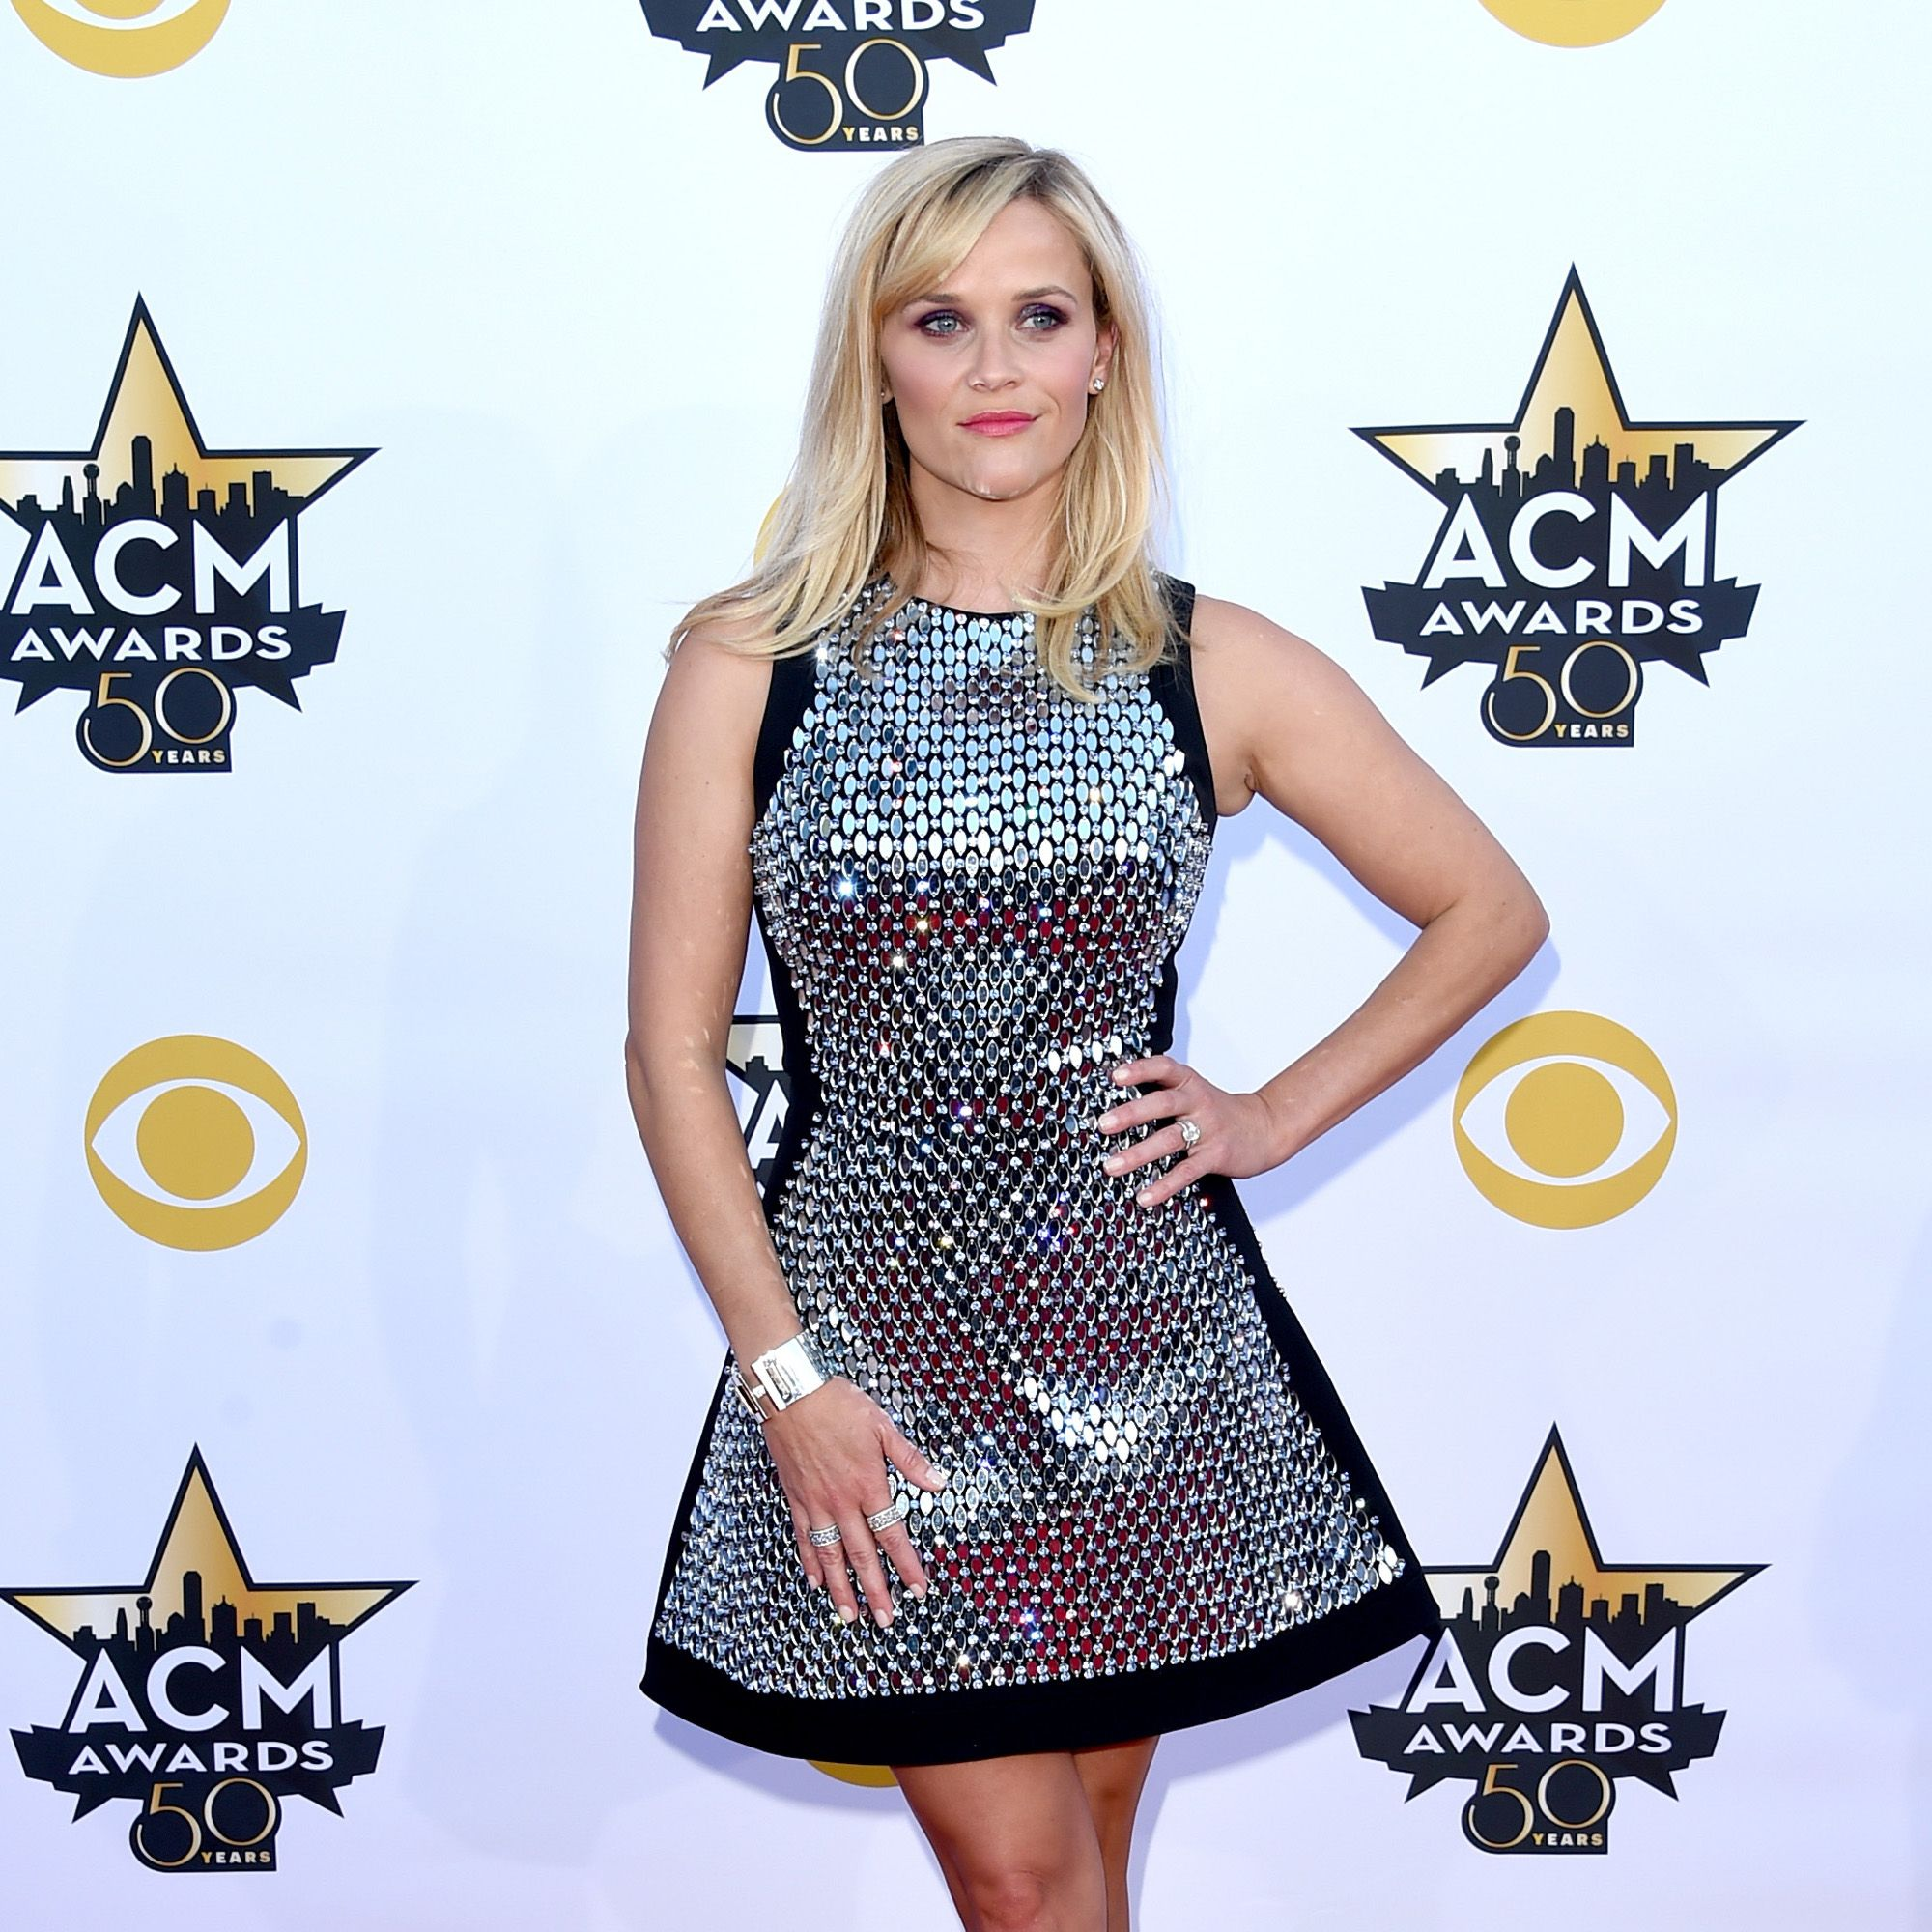 ARLINGTON, TX - APRIL 19:  Actress Reese Witherspoon attends the 50th Academy Of Country Music Awards at AT&amp&#x3B;T Stadium on April 19, 2015 in Arlington, Texas.  (Photo by Jason Merritt/Getty Images)